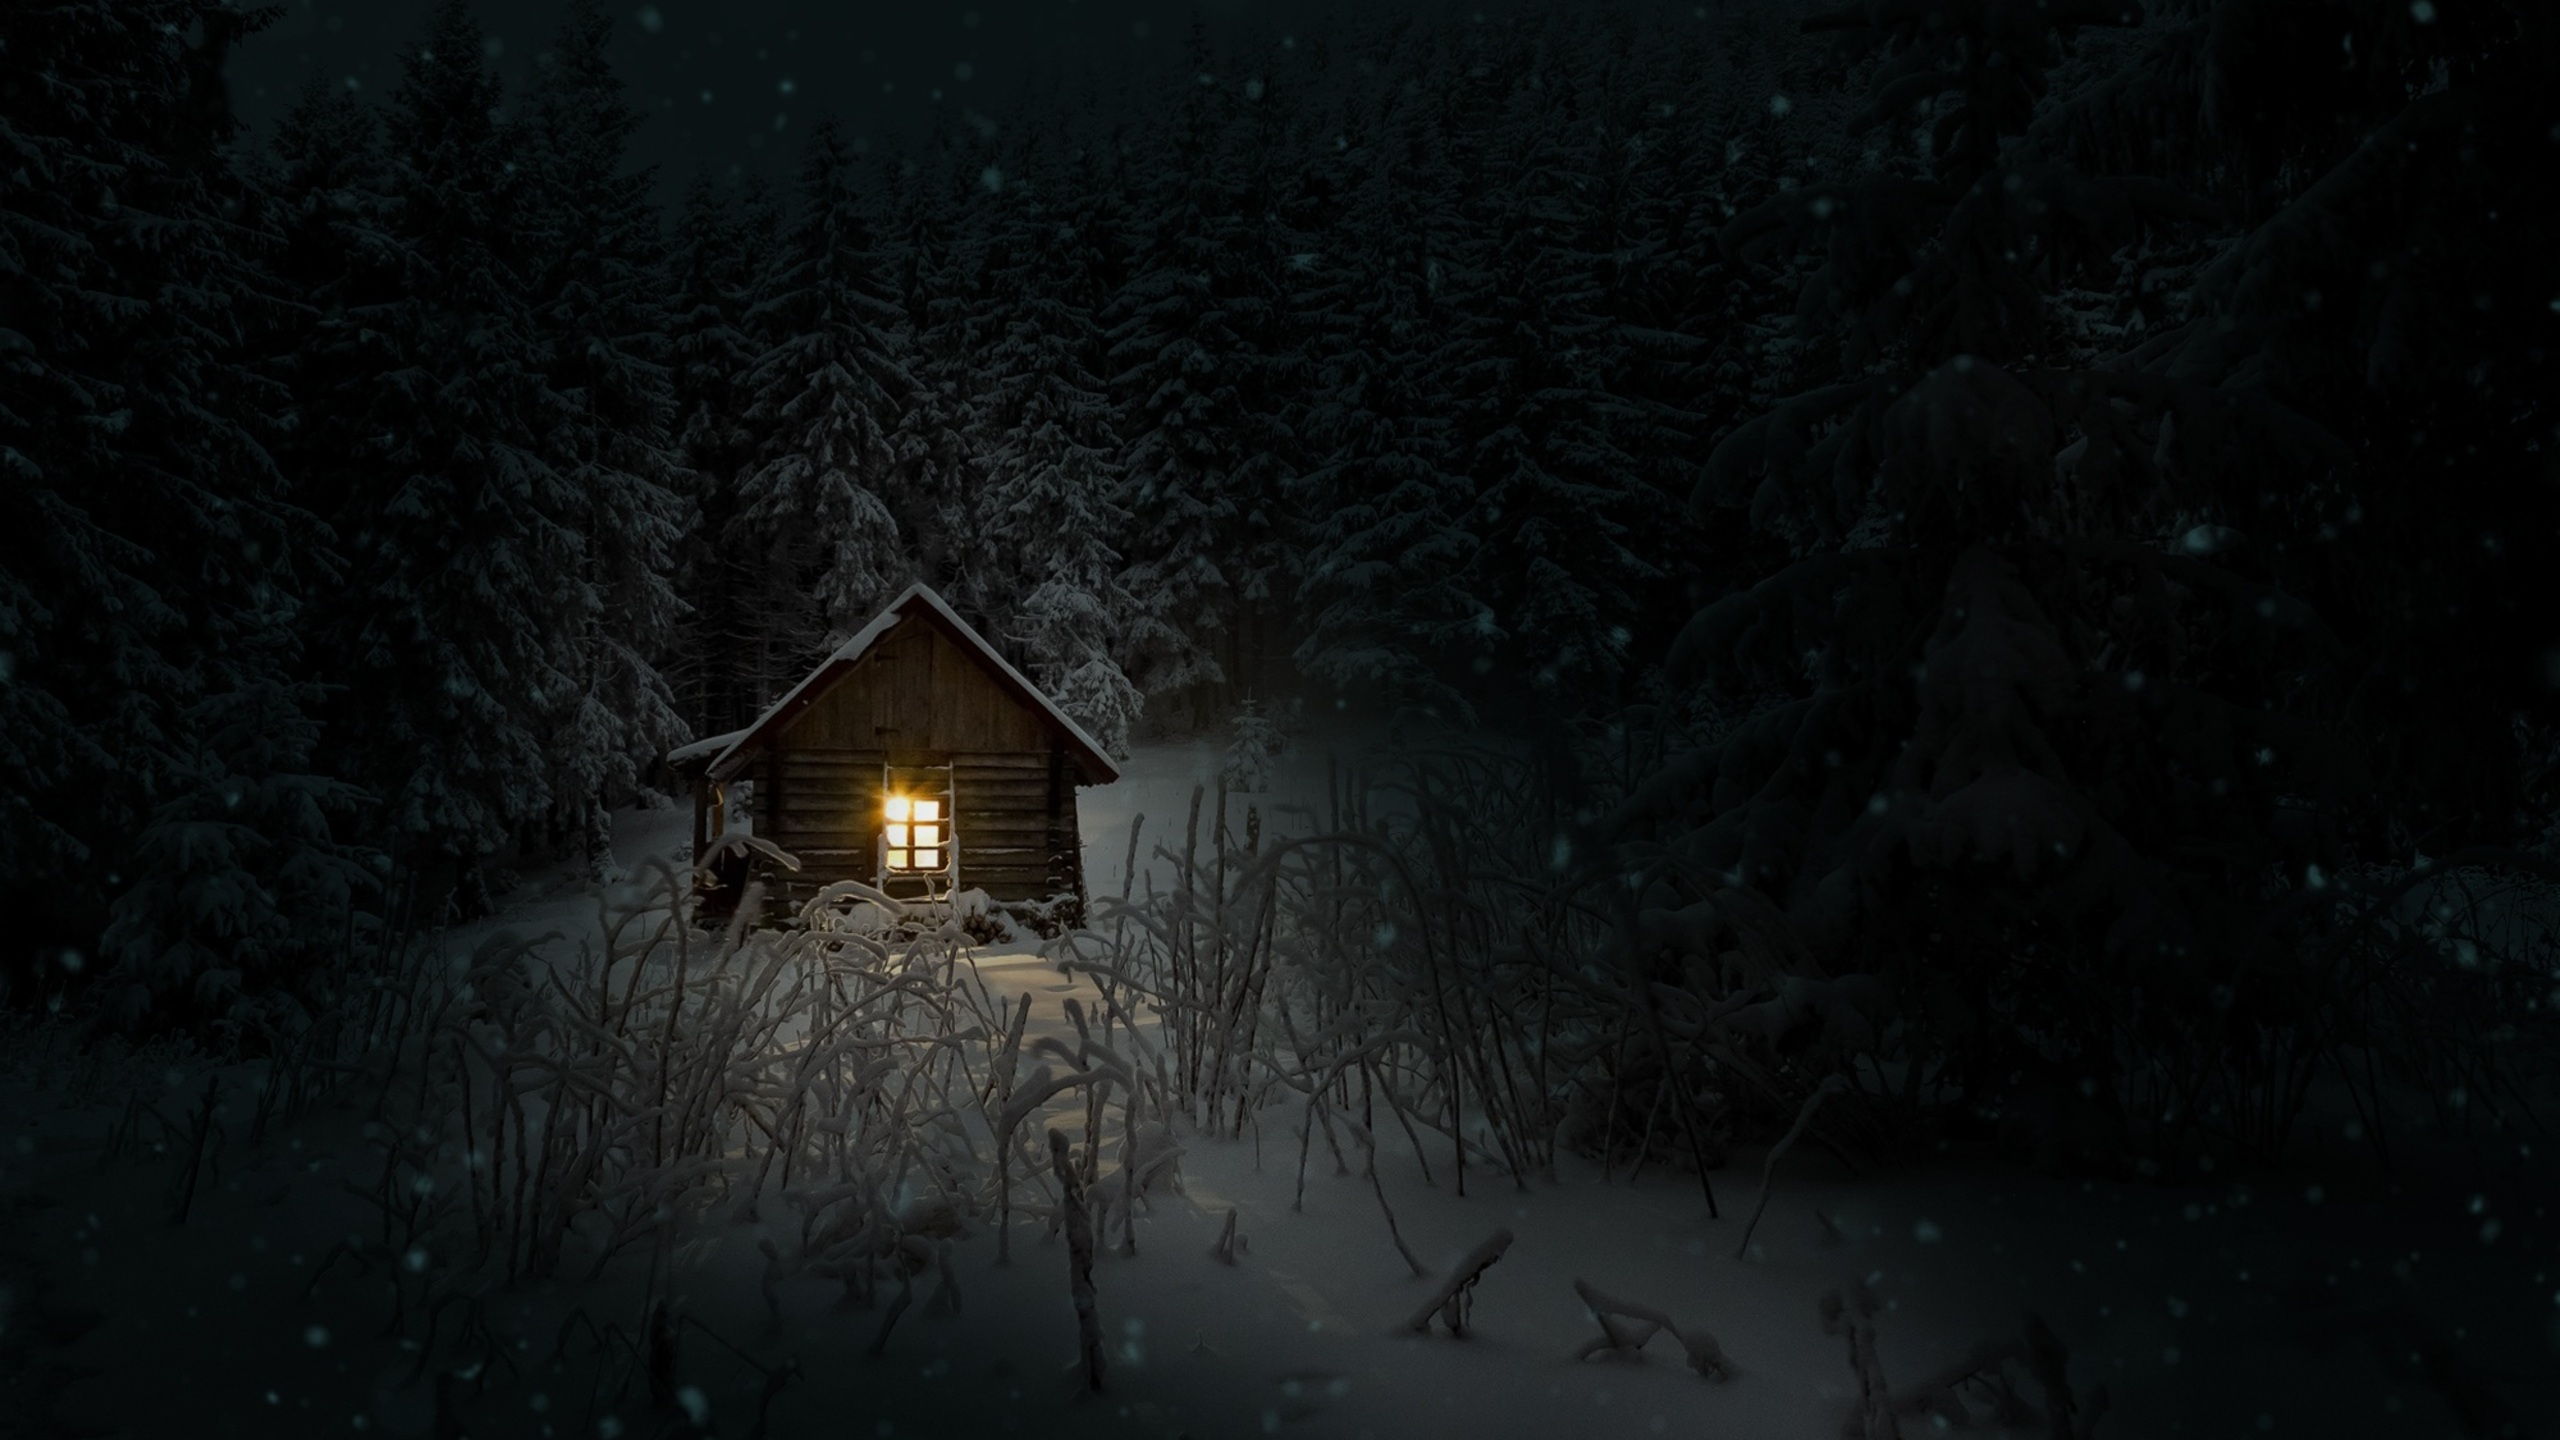 2560x1440 House In Woods Winter Cold 1440p Resolution Hd 4k